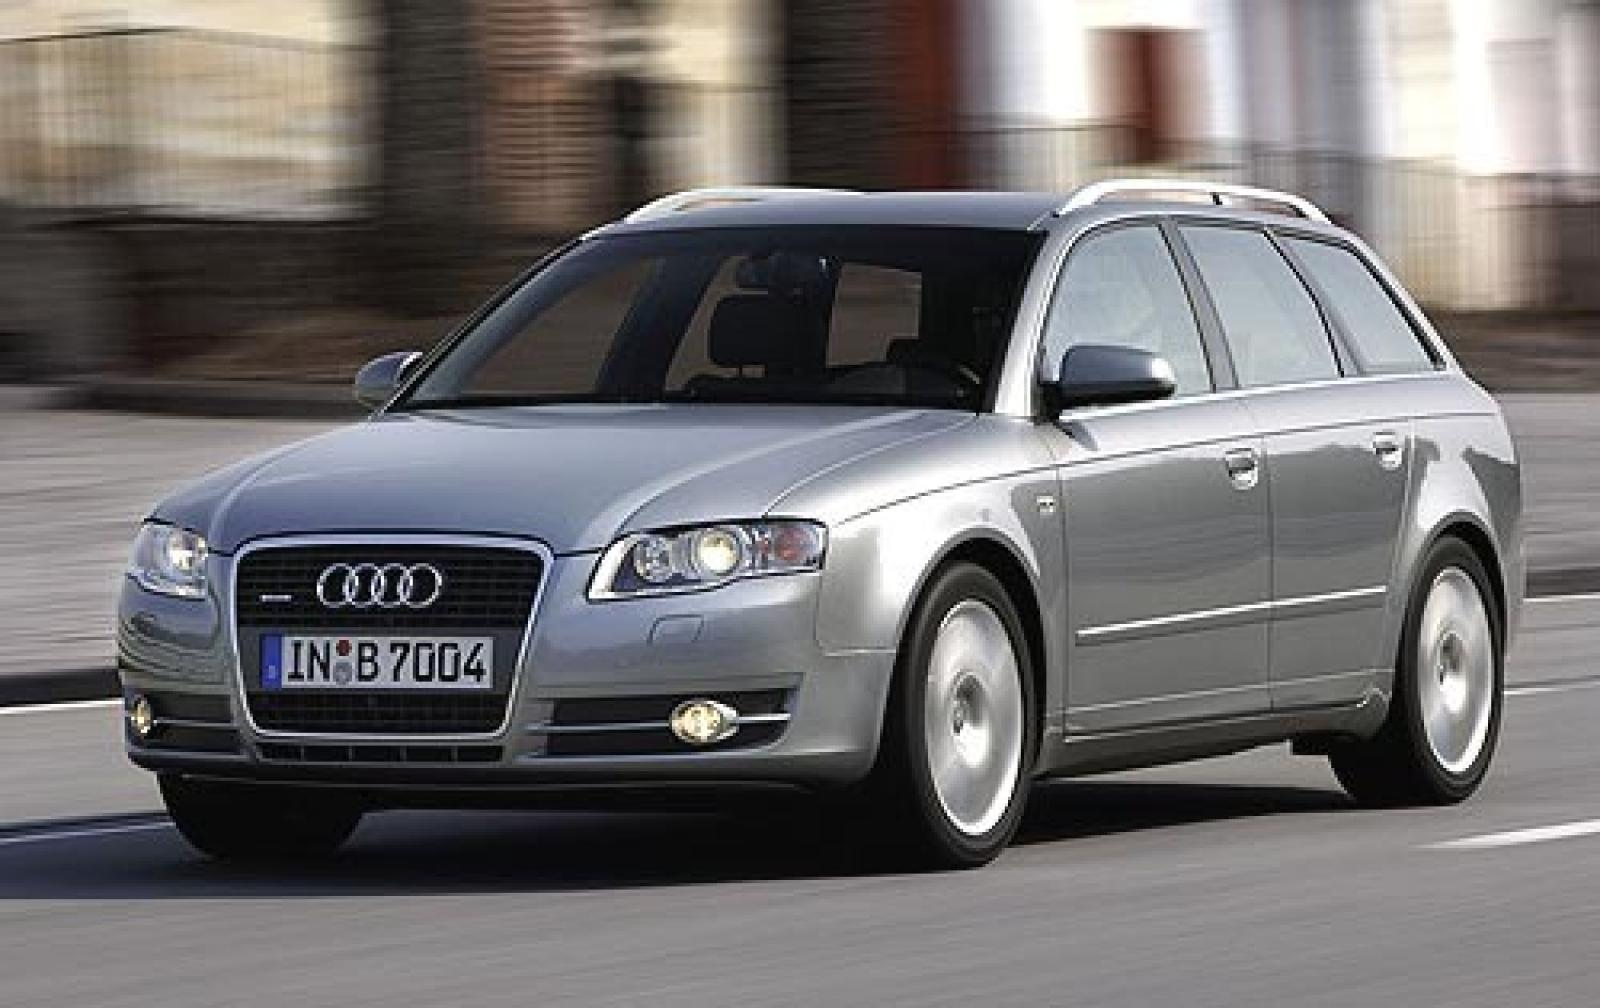 2006 Audi A4 Information And Photos Zombiedrive